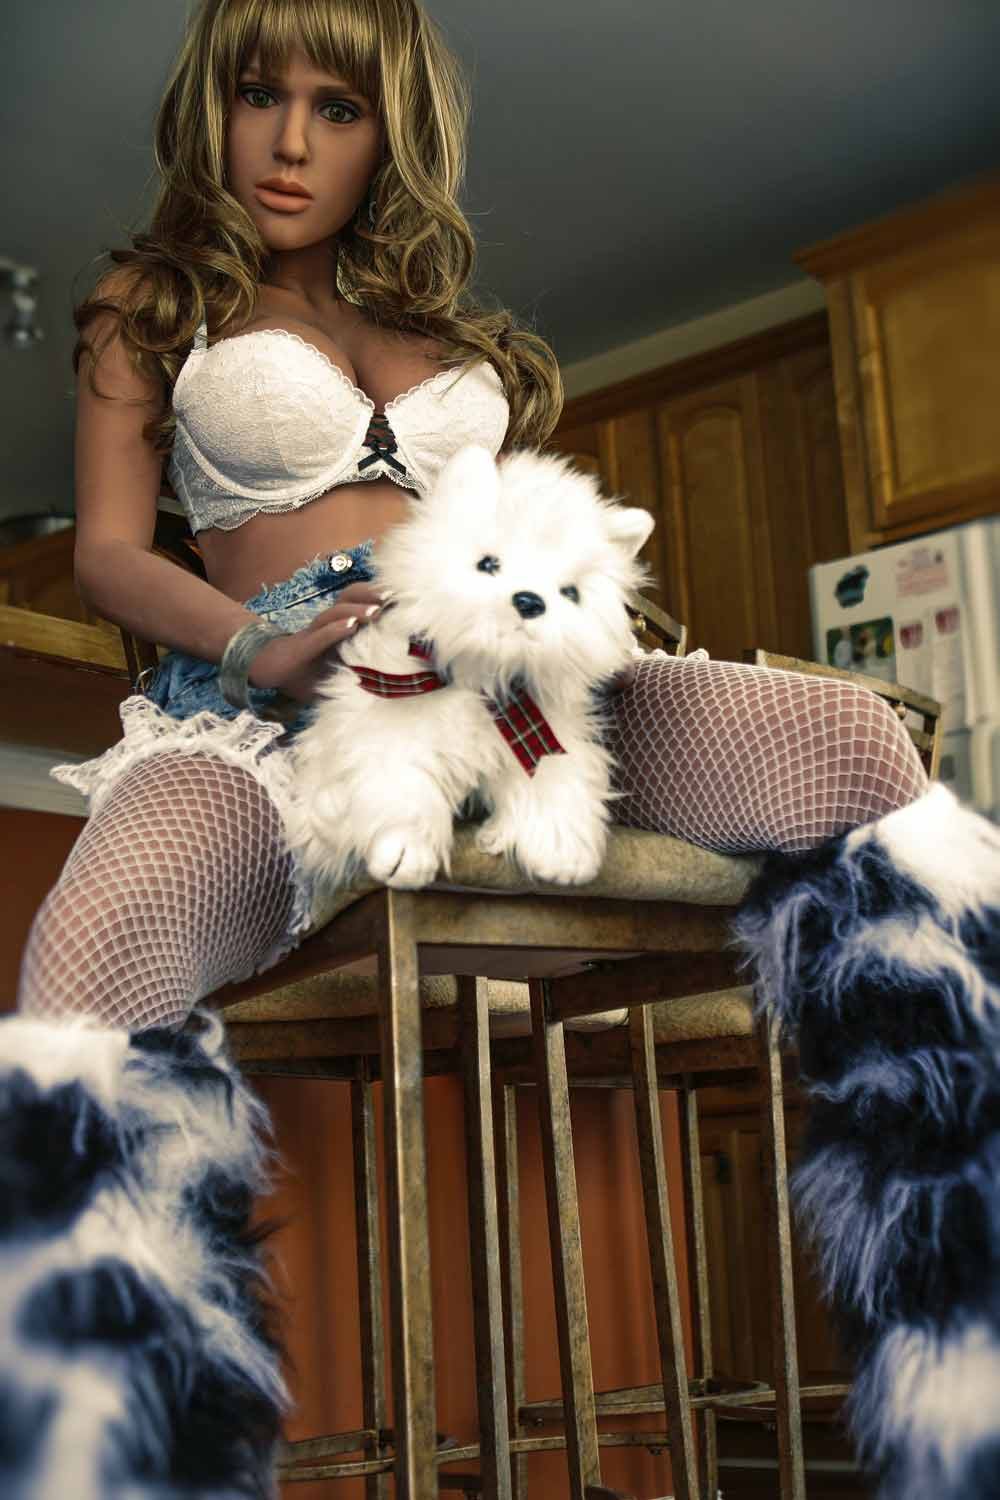 Sex doll with dog between thighs